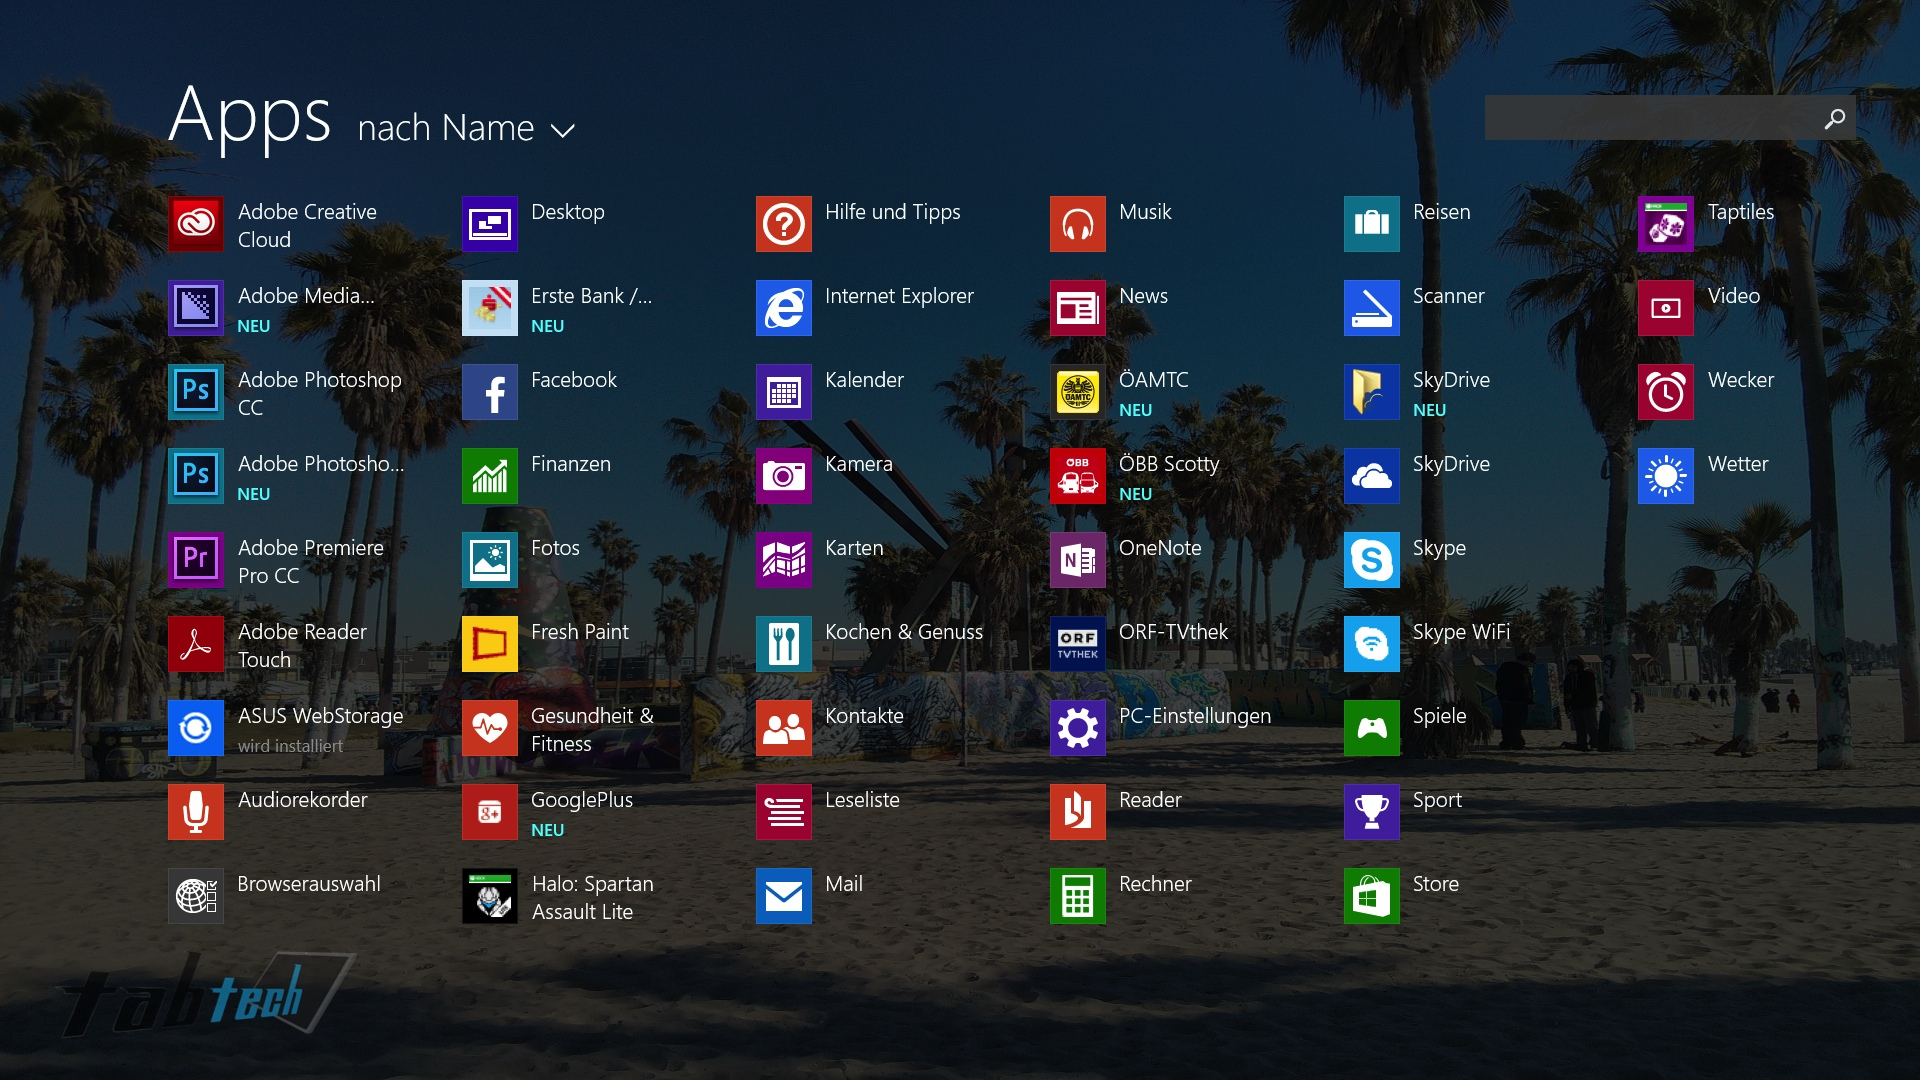 Microsoft surface pro 2 apps : At&t store pearland tx